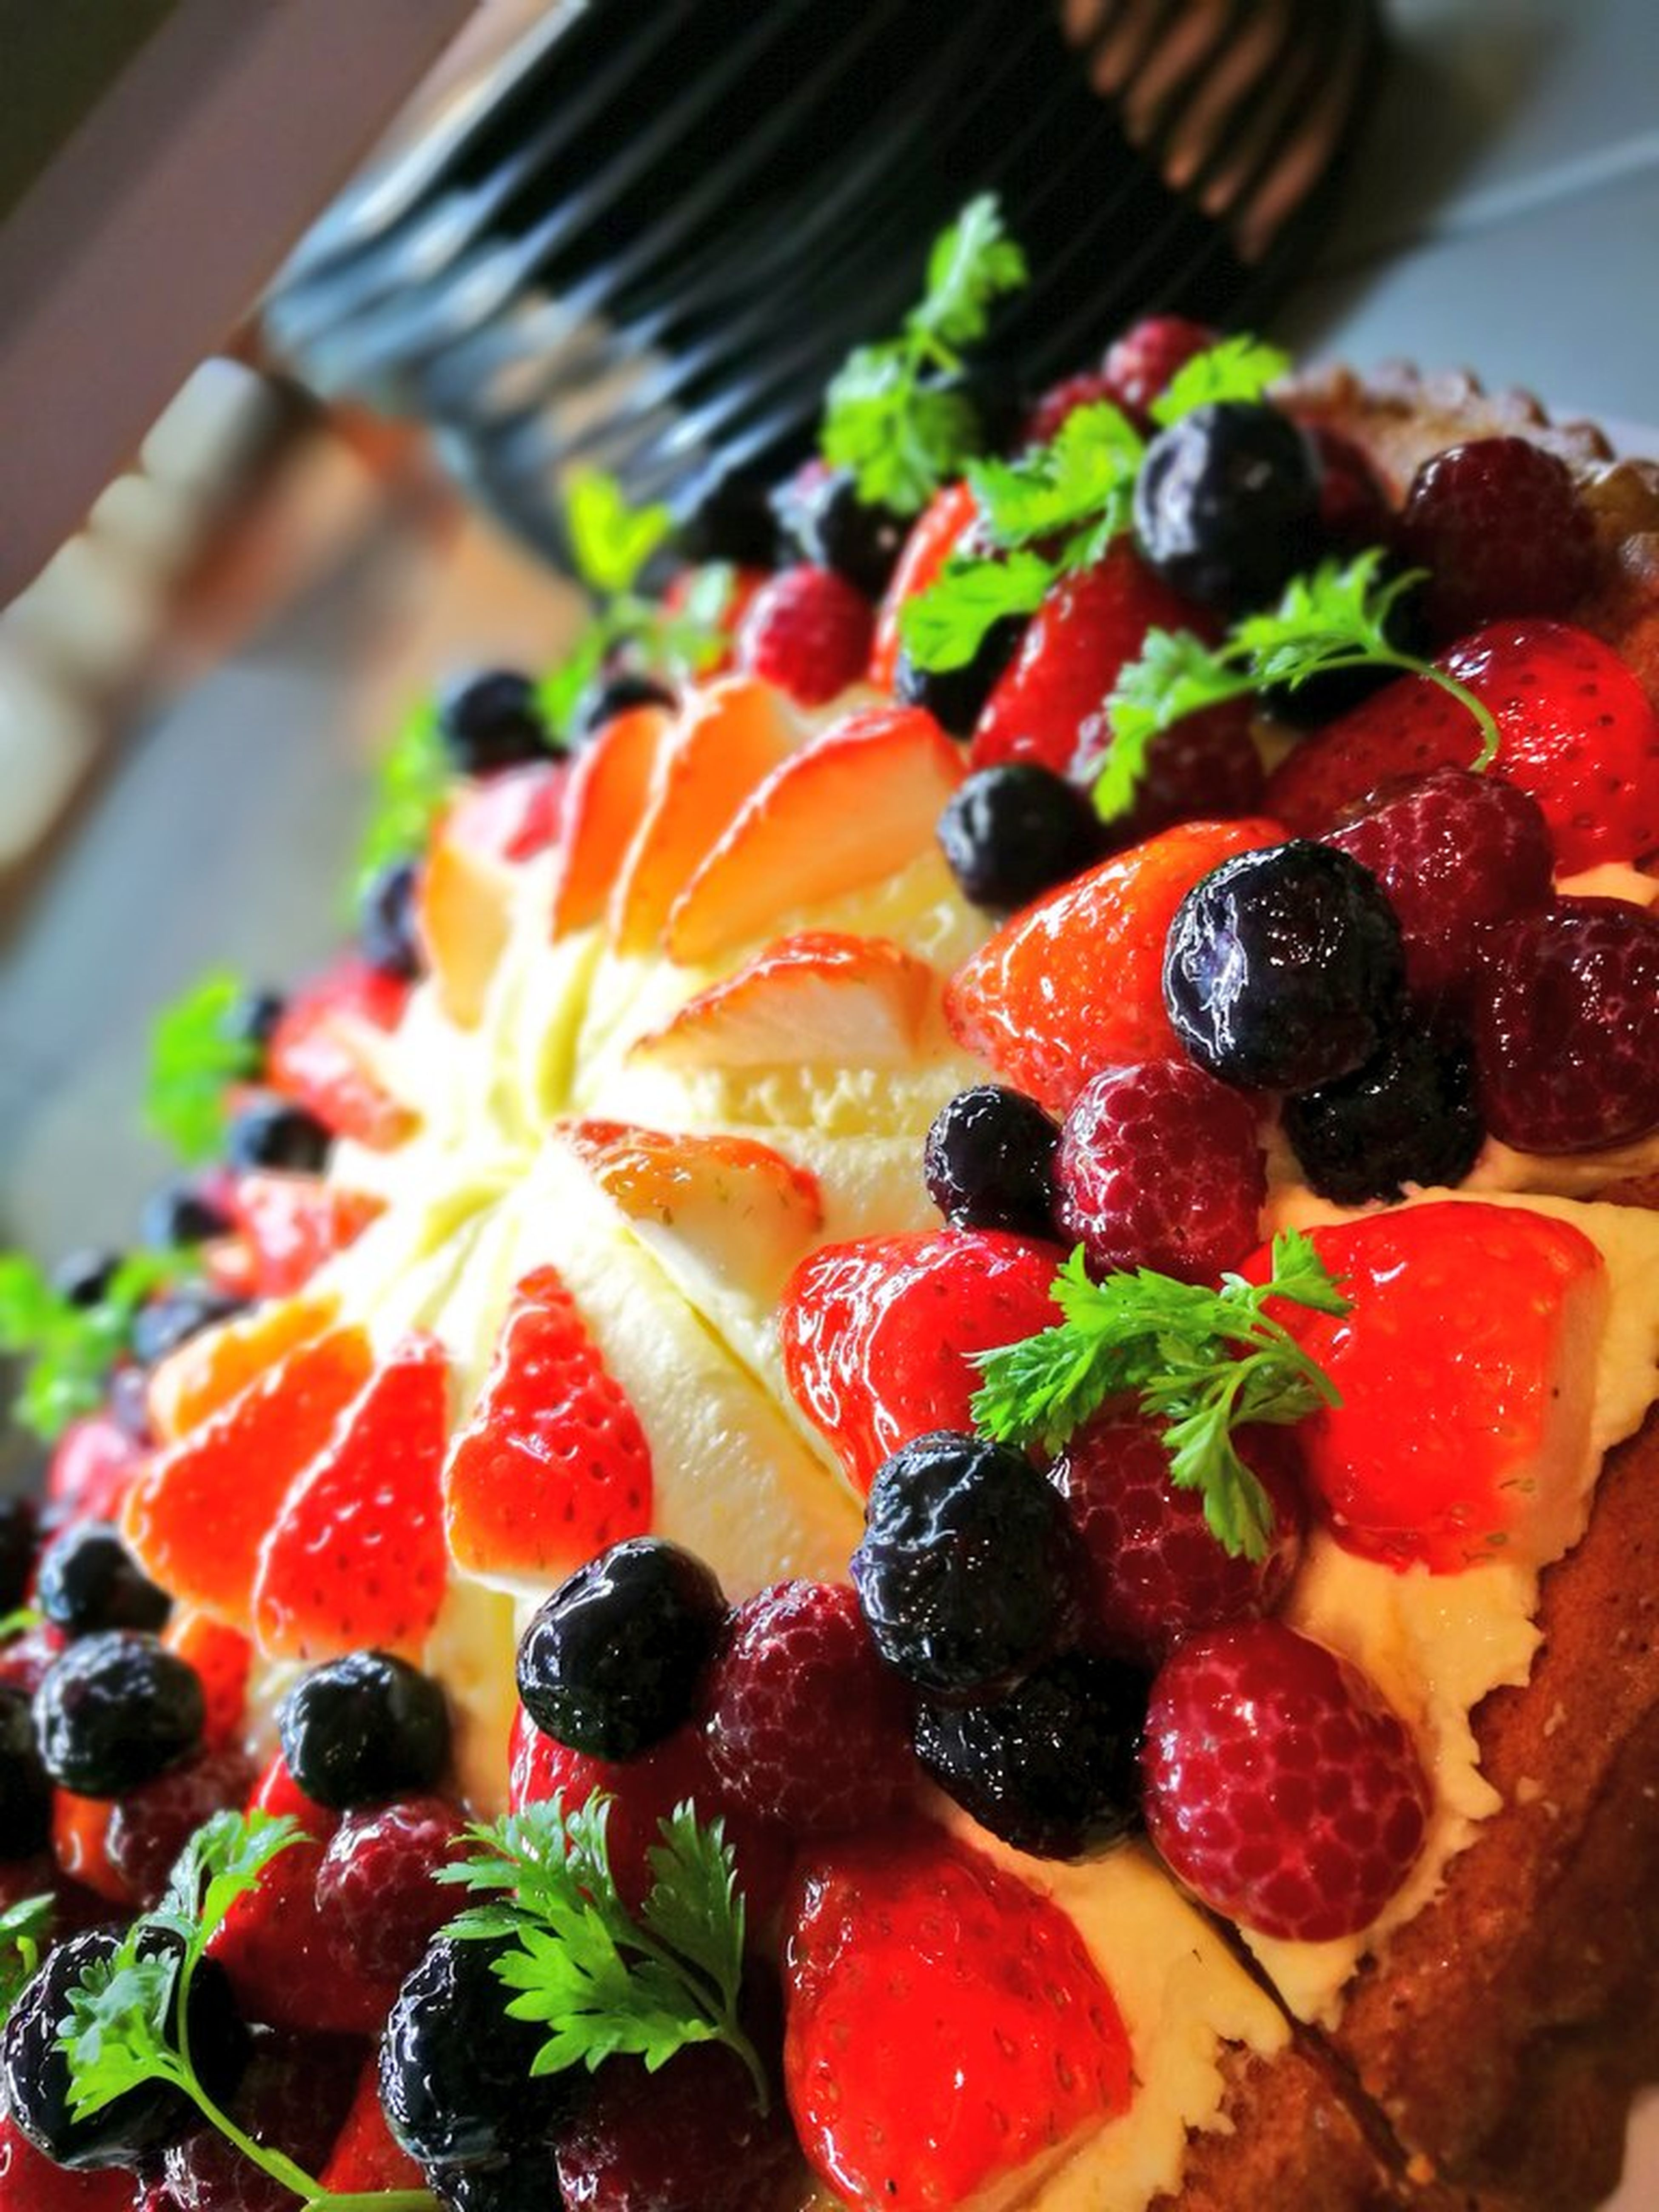 mix berry タルトケーキ Food Red Close-up Meal Fruit Gourmet Salad SLICE No People Food And Drink Indoors  Healthy Eating Freshness Ready-to-eat